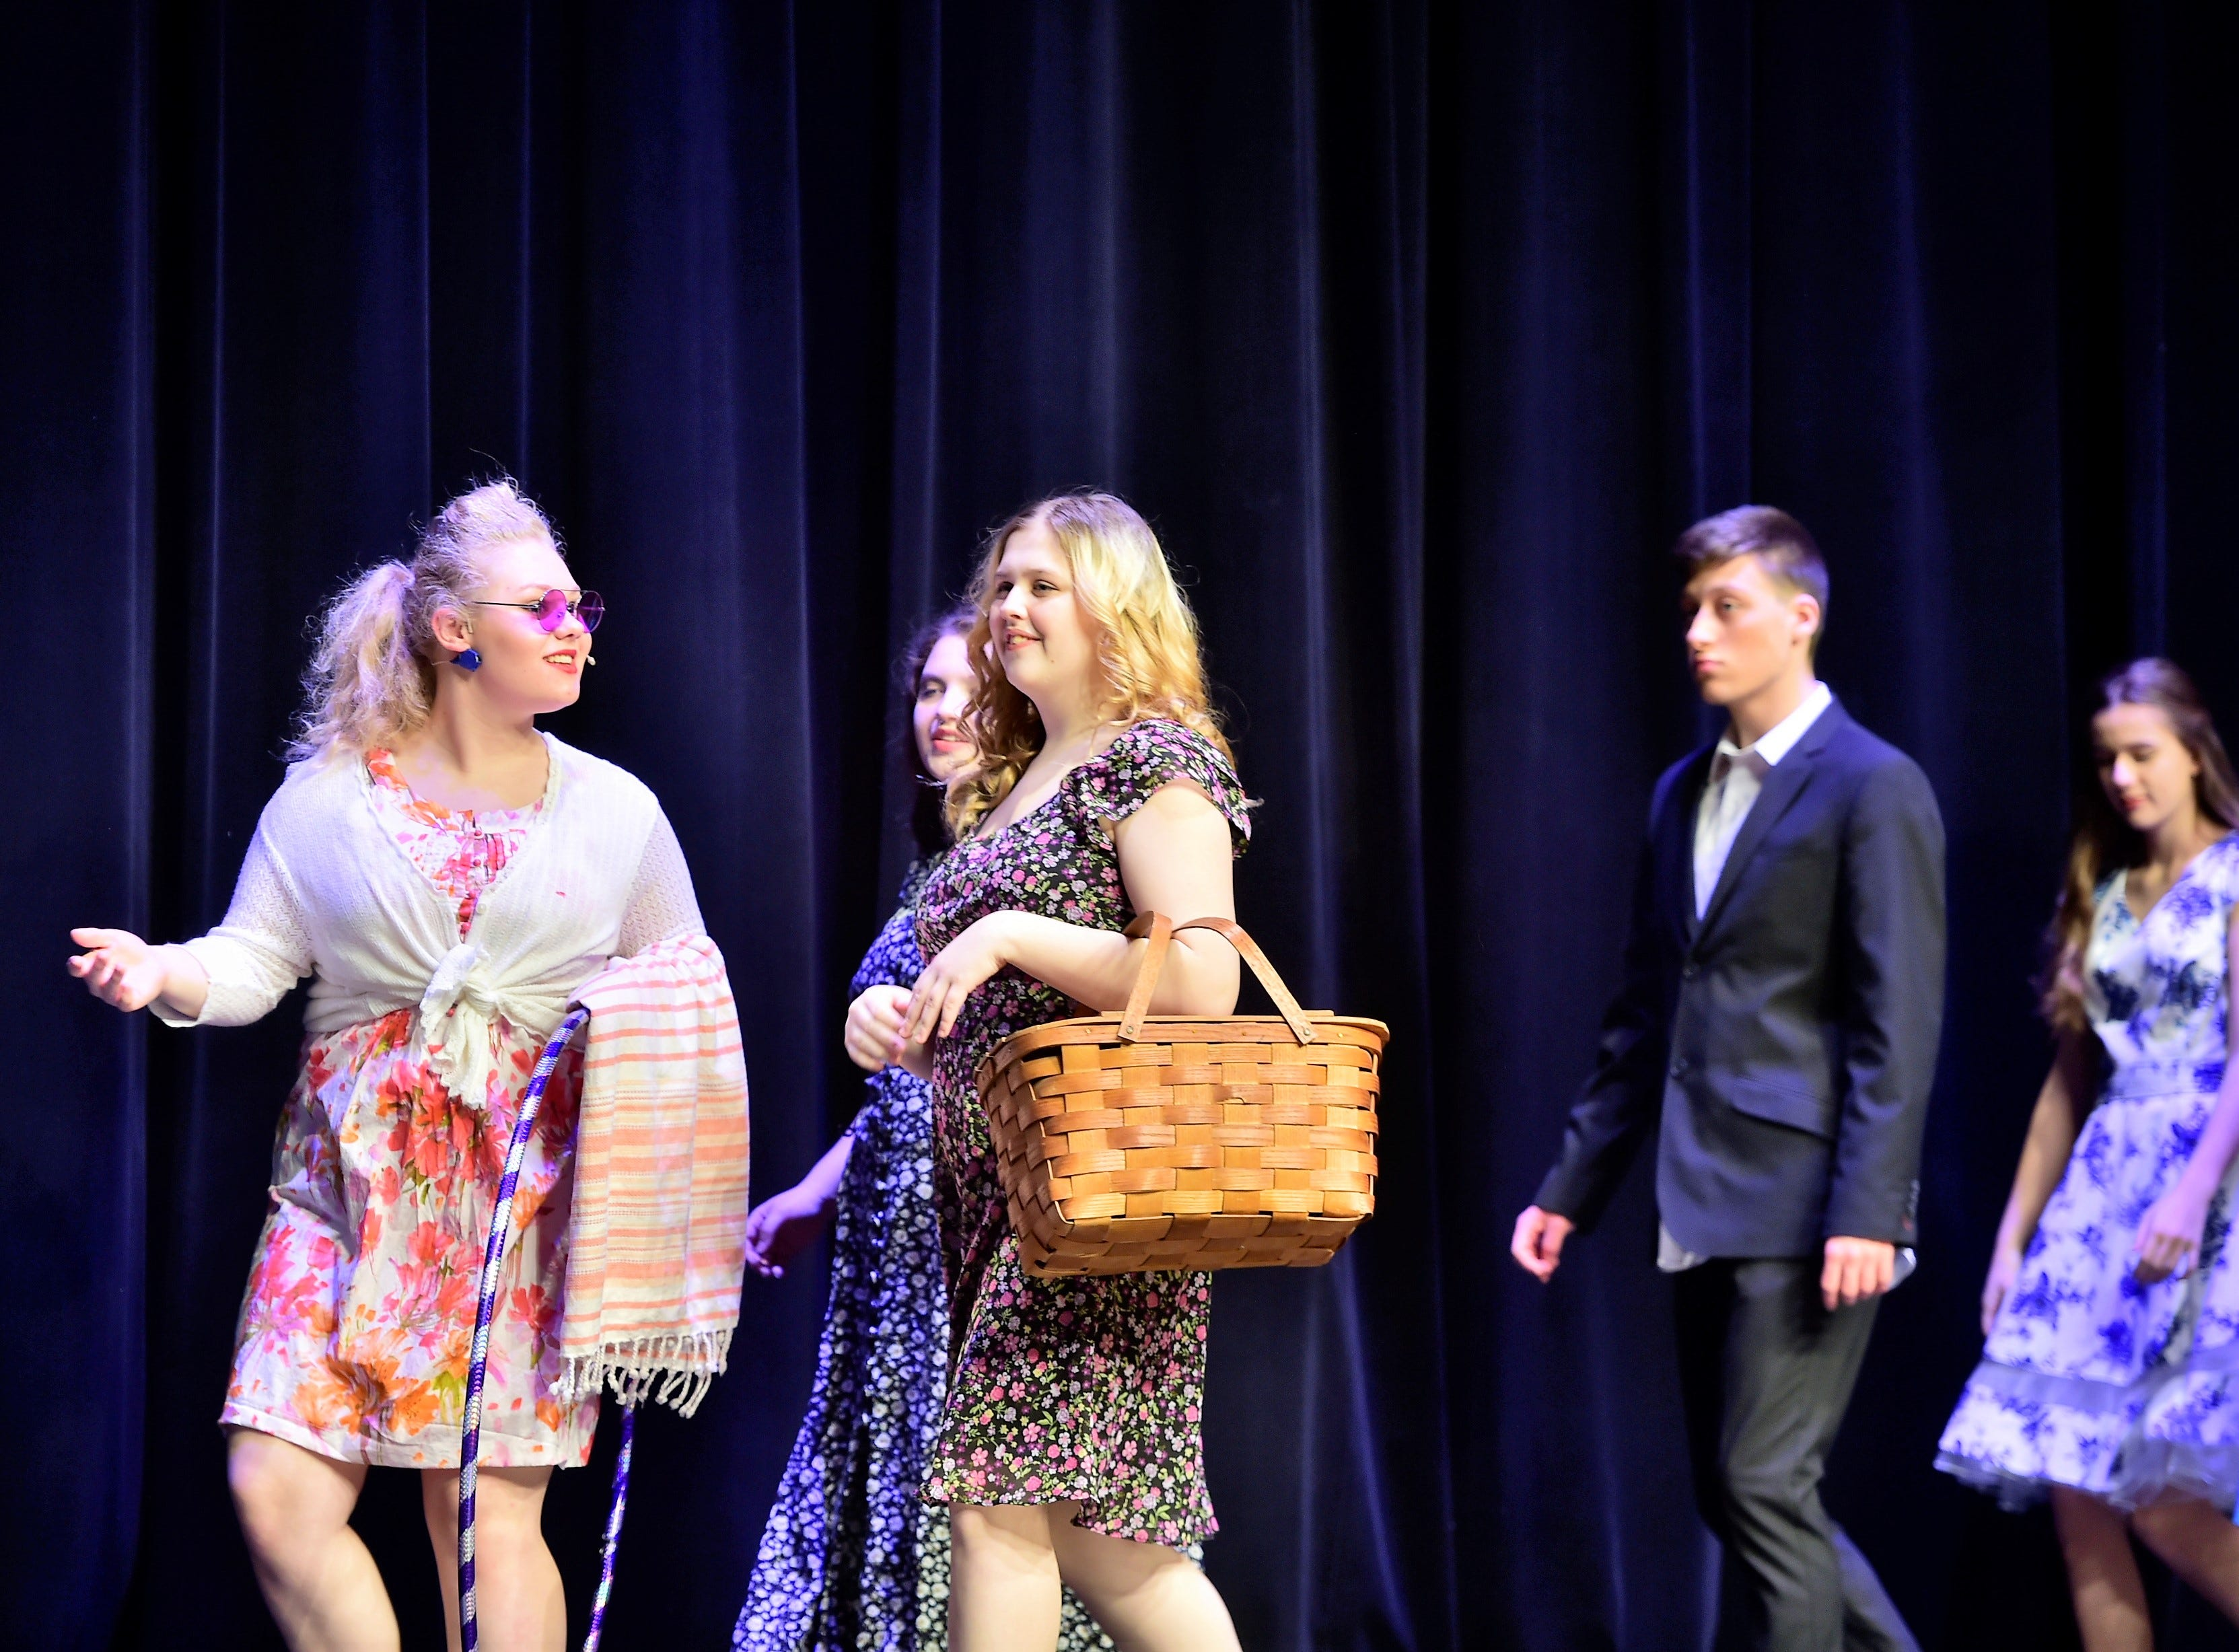 """Cast members walk across the stage while rehearsing a scene from """"The Pajama Game,"""" on Sunday, March 10, 2019, at Waynesboro Area Senior High School. The musical, based on the 1953 novel, """"7 1/2 Cents"""" by Richard Bissell, tells the story of a pajama factory where workers are fighting for a raise of 7 1/2 cents. Showtimes for Waynesboro Area School District's All-School Production of """"The Pajama Game"""" are 7 p.m. Friday and Saturday, March 15 and 16, and 2 p.m. Sunday, March 17 in the high school auditorium. For choose-your-seat tickets, $10 for adults and $6 for children under 12, go to https://washsmusic.ticketleap.com/the-pajama-game/. General admission tickets will also be sold at the door."""